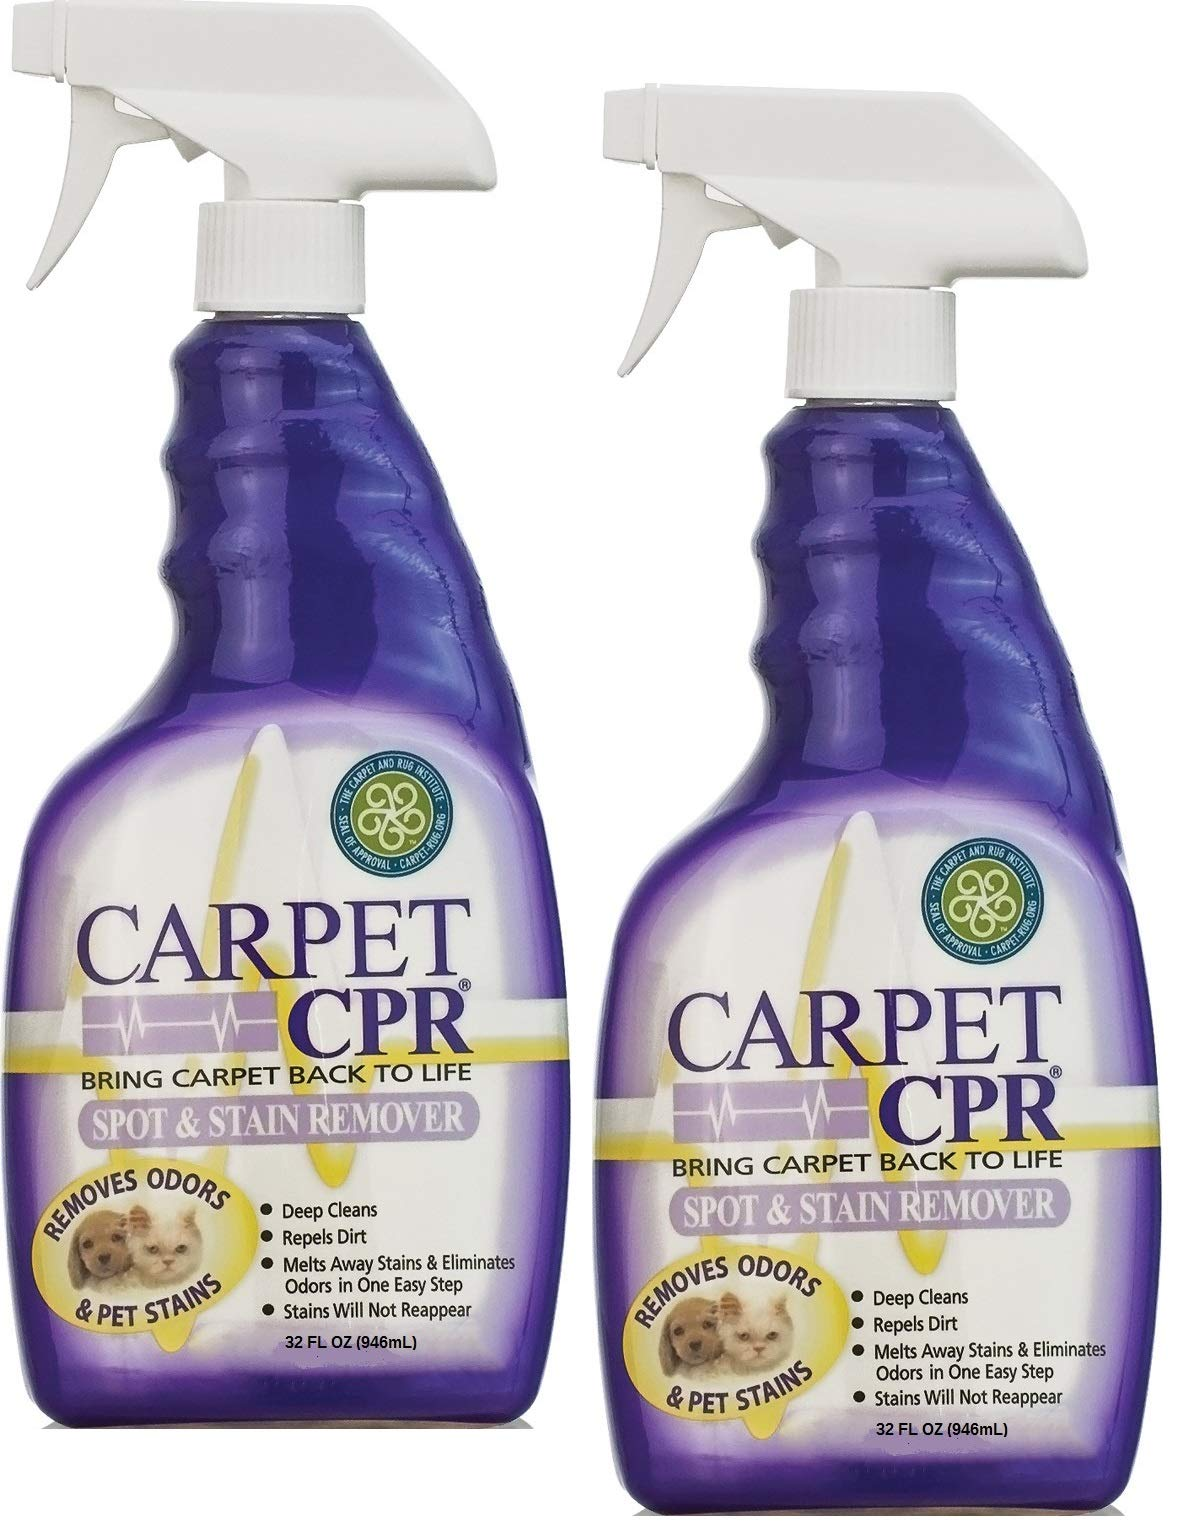 Carpet CPR (2PK / 32oz Bottles) - Spot Treatment & Dirt Repellent for High Traffic Areas and Your Toughest Stains - Treats Spots, Deep Cleans & Repels Dirt in Minutes  by CPR